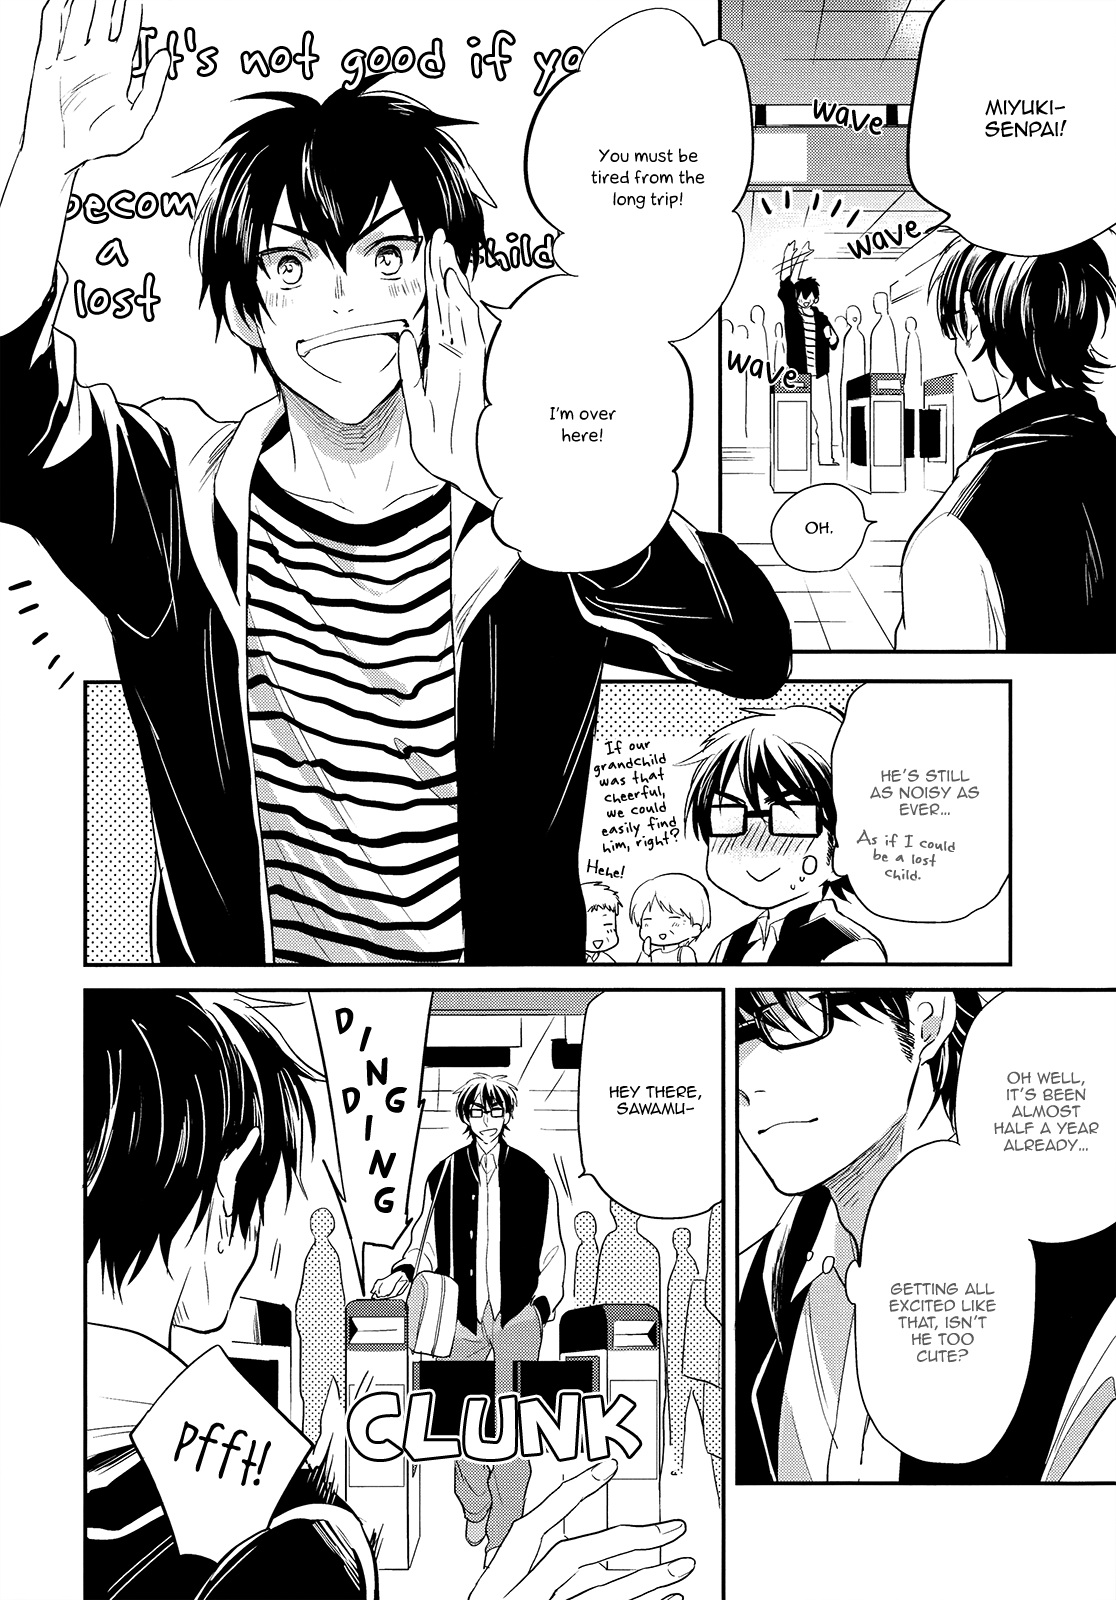 Daiya no A dj - Vintage chapter 1 page 7